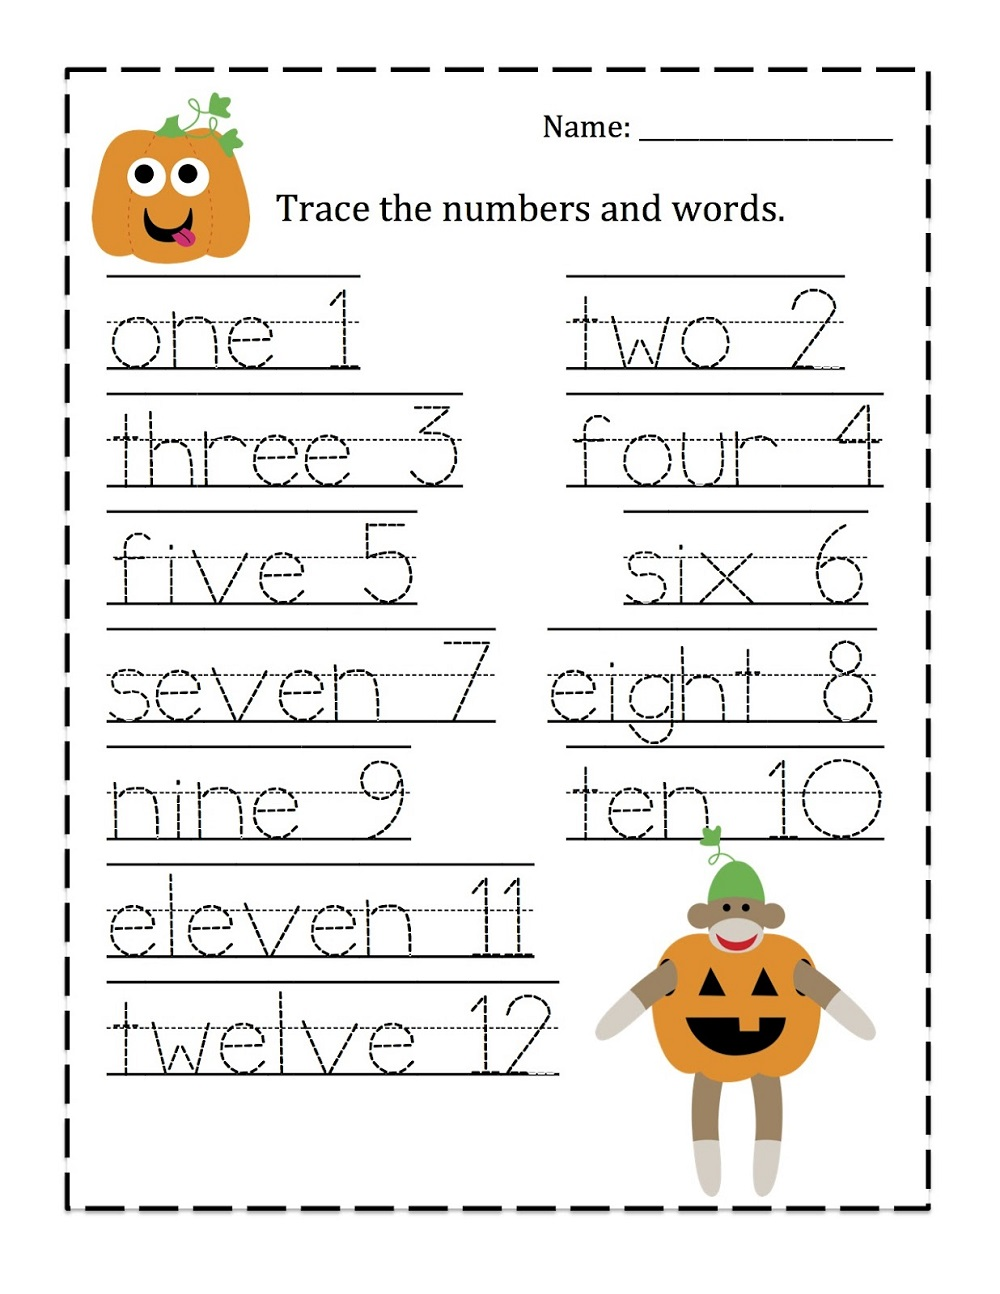 trace numbers 1-10 words